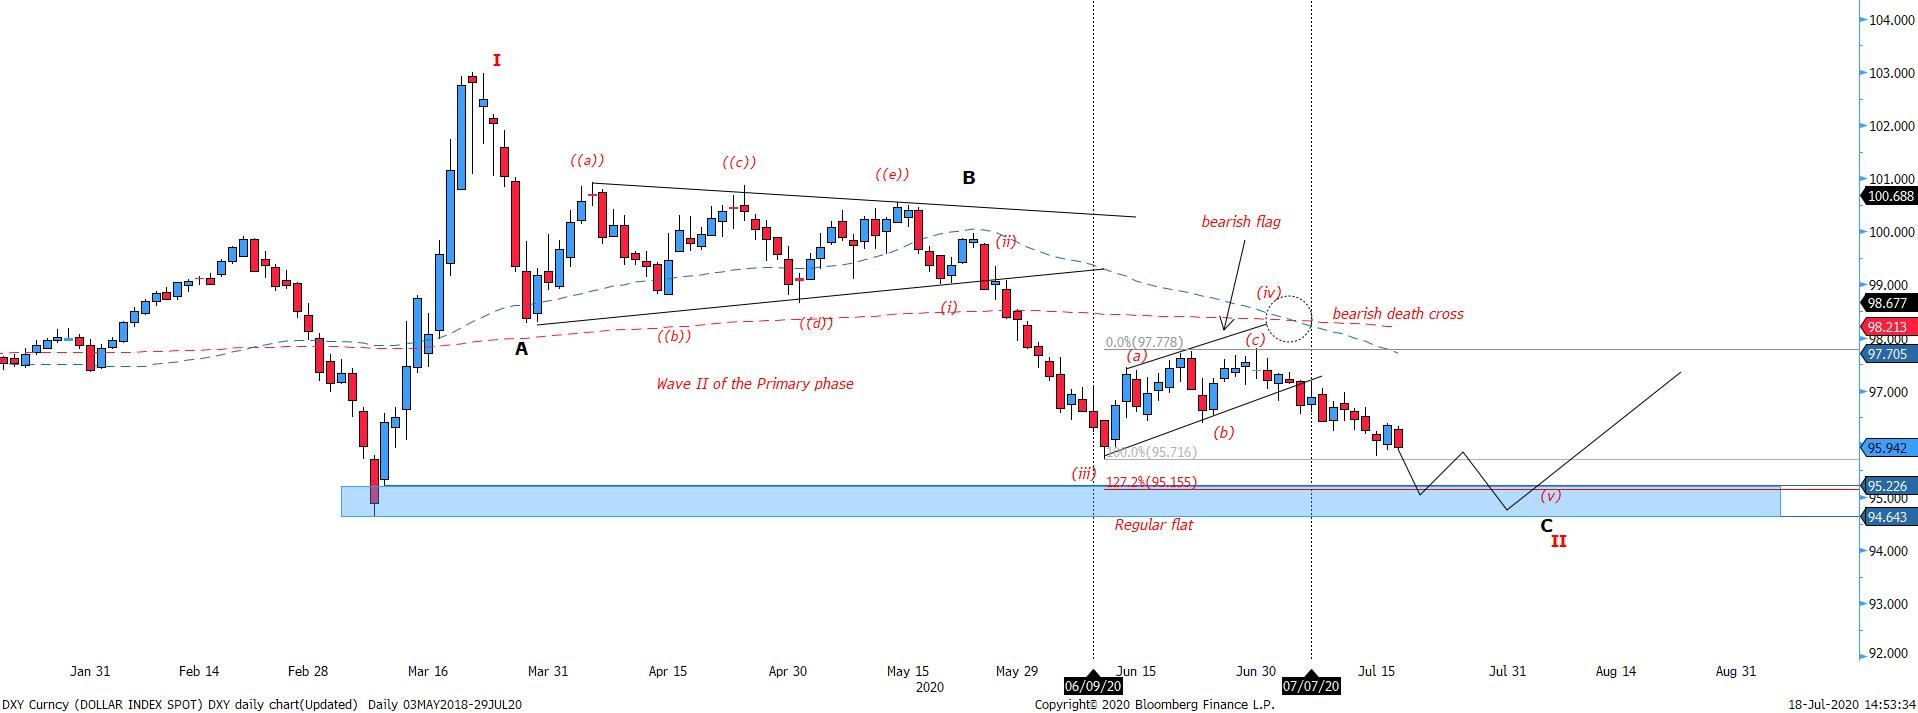 Figure 1 Dollar Index – Elliott sub-wave correction in place, with price falling towards support zone